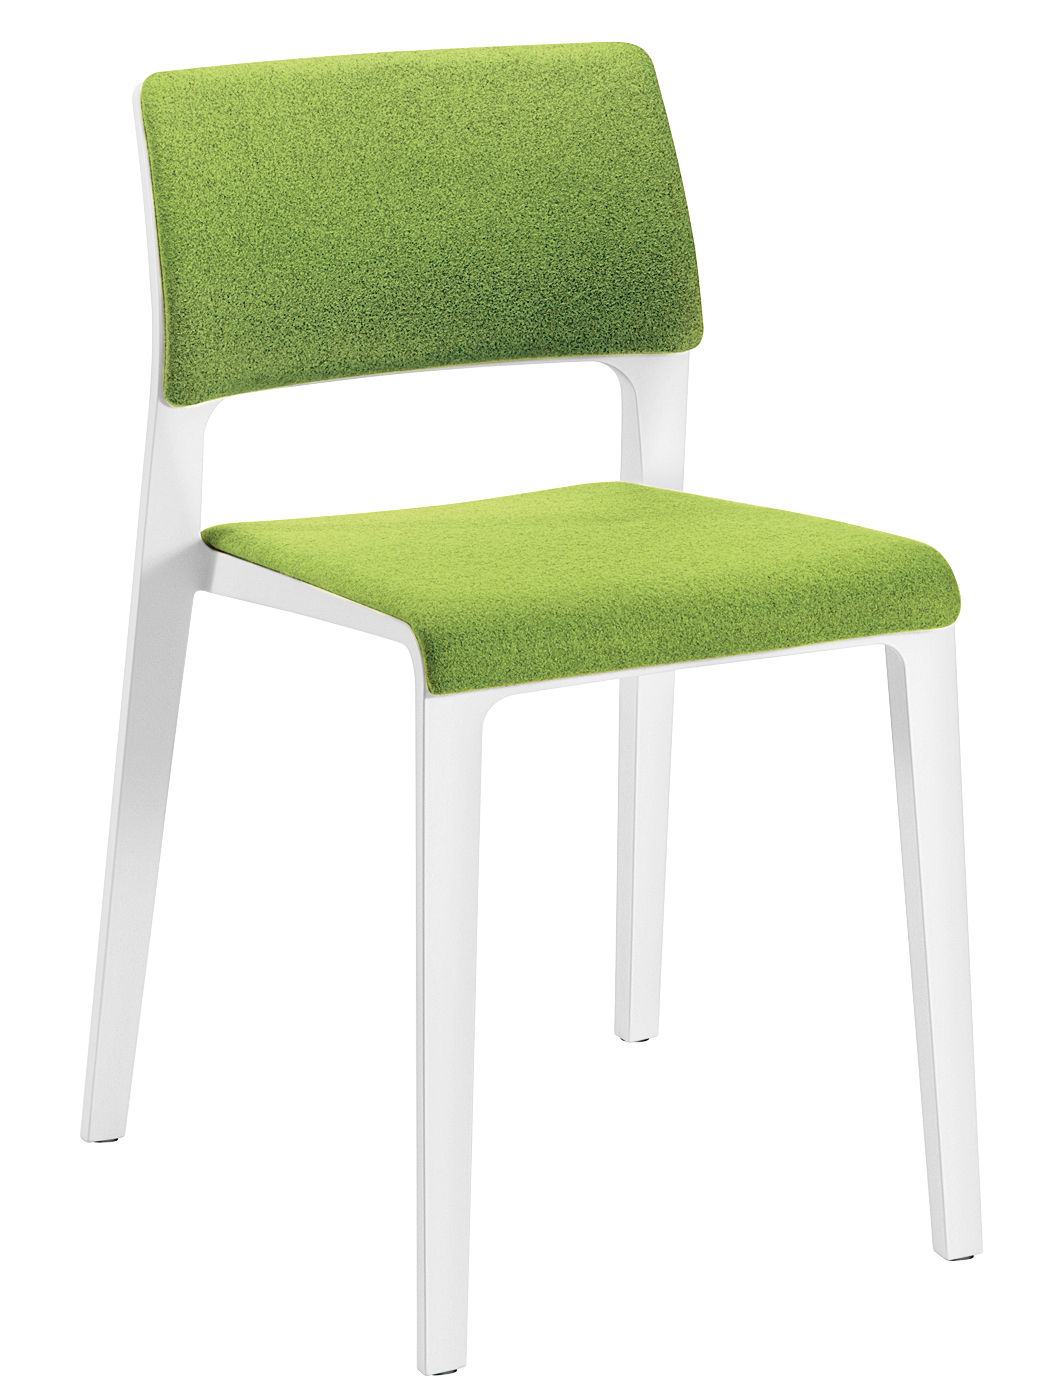 Furniture - Chairs - Juno Padded chair by Arper - White & Green fabric - Kvadrat fabric, Polypropylene